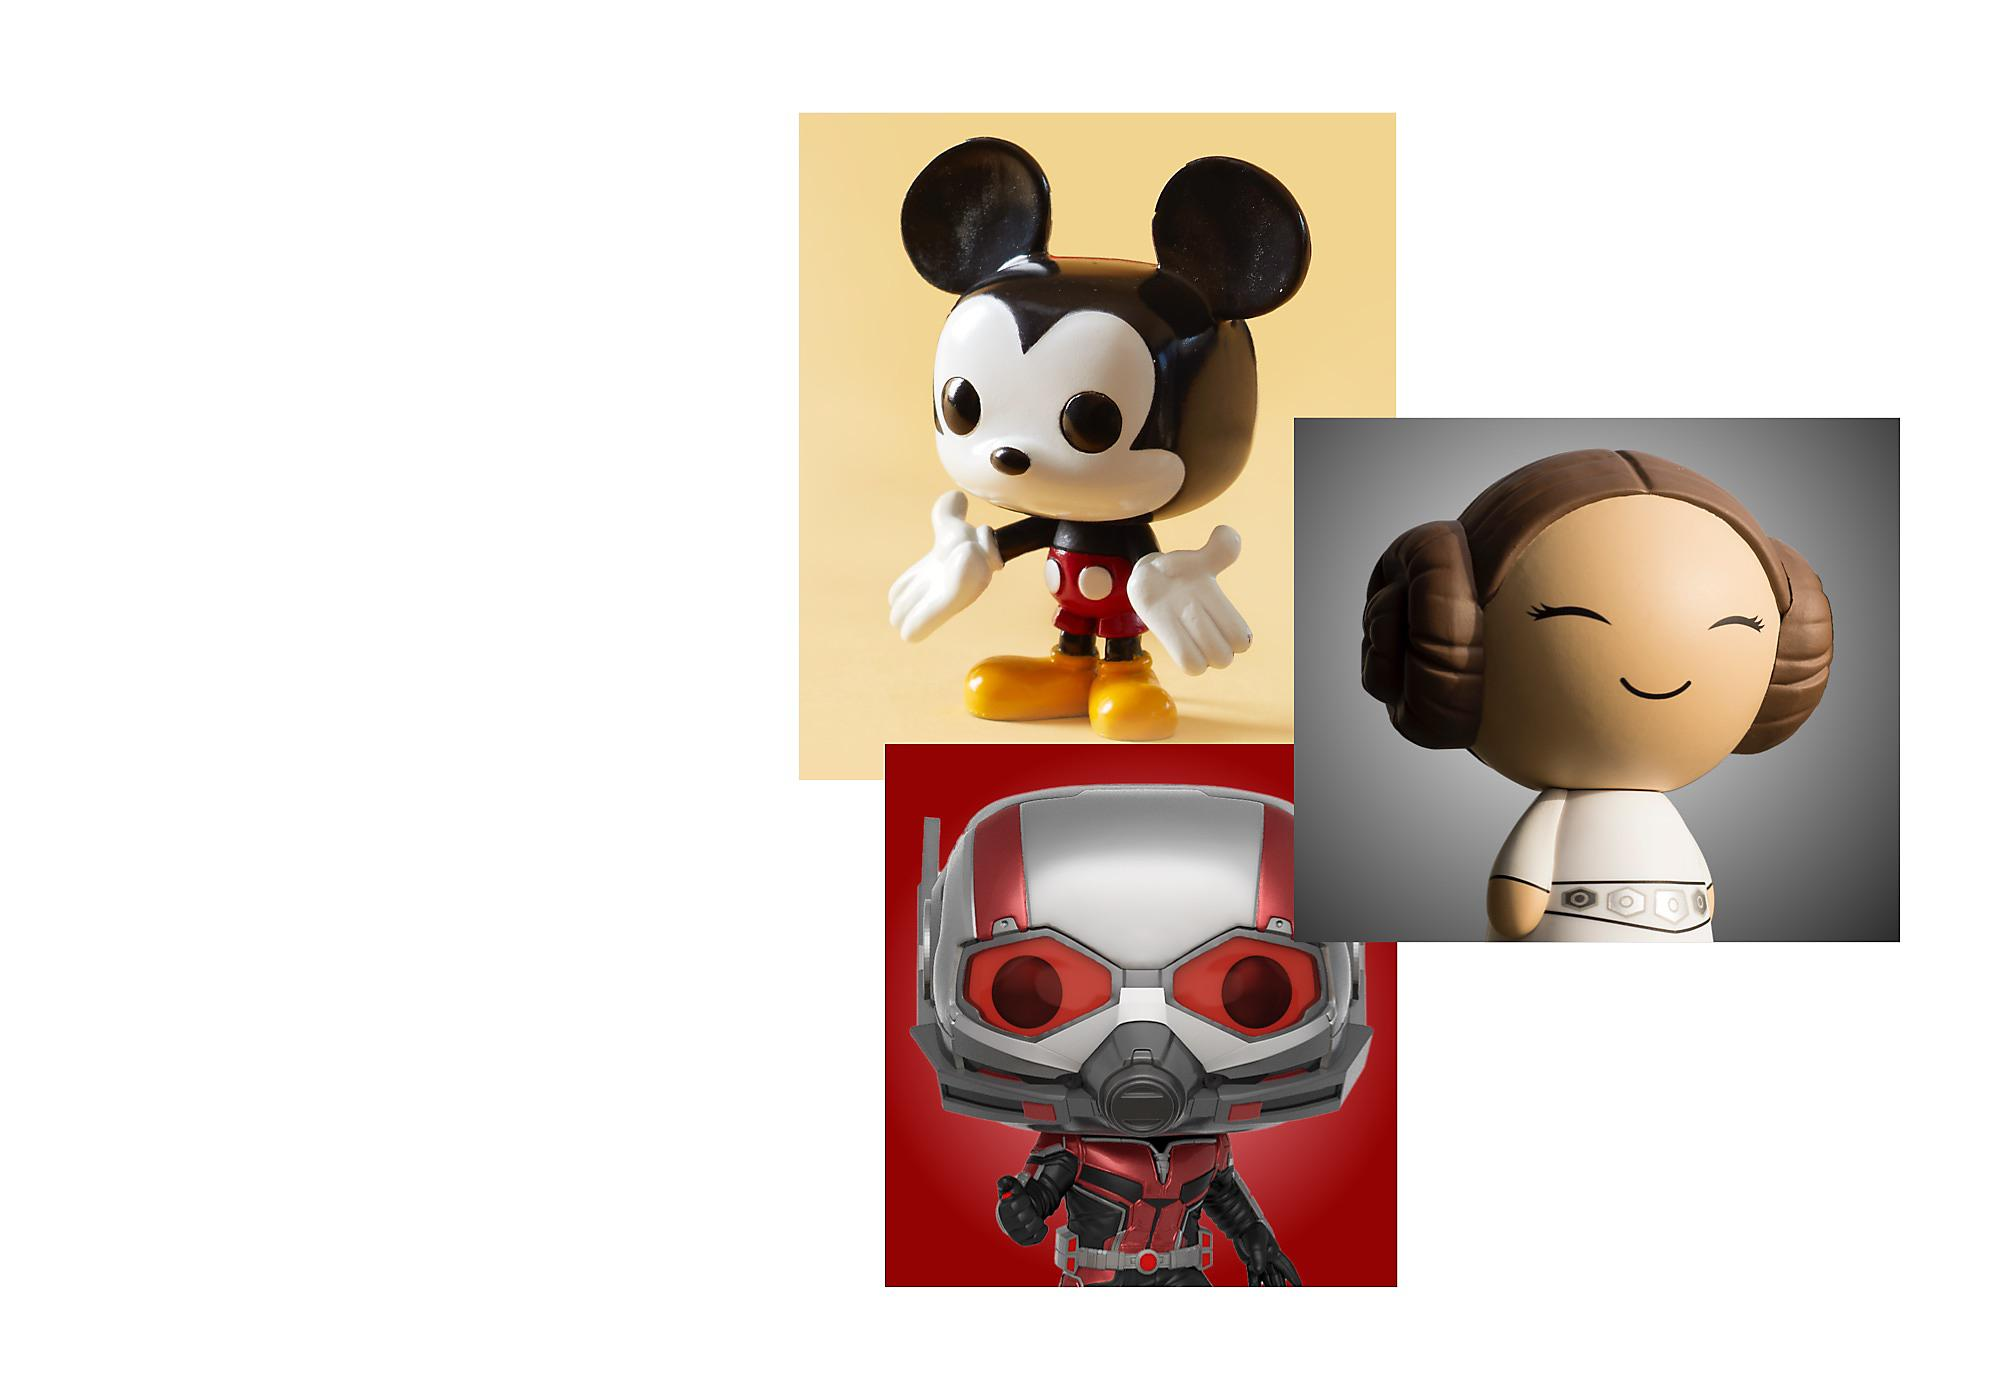 Fun With Funko Coolest collectibles with lots of character. SHOP NOW